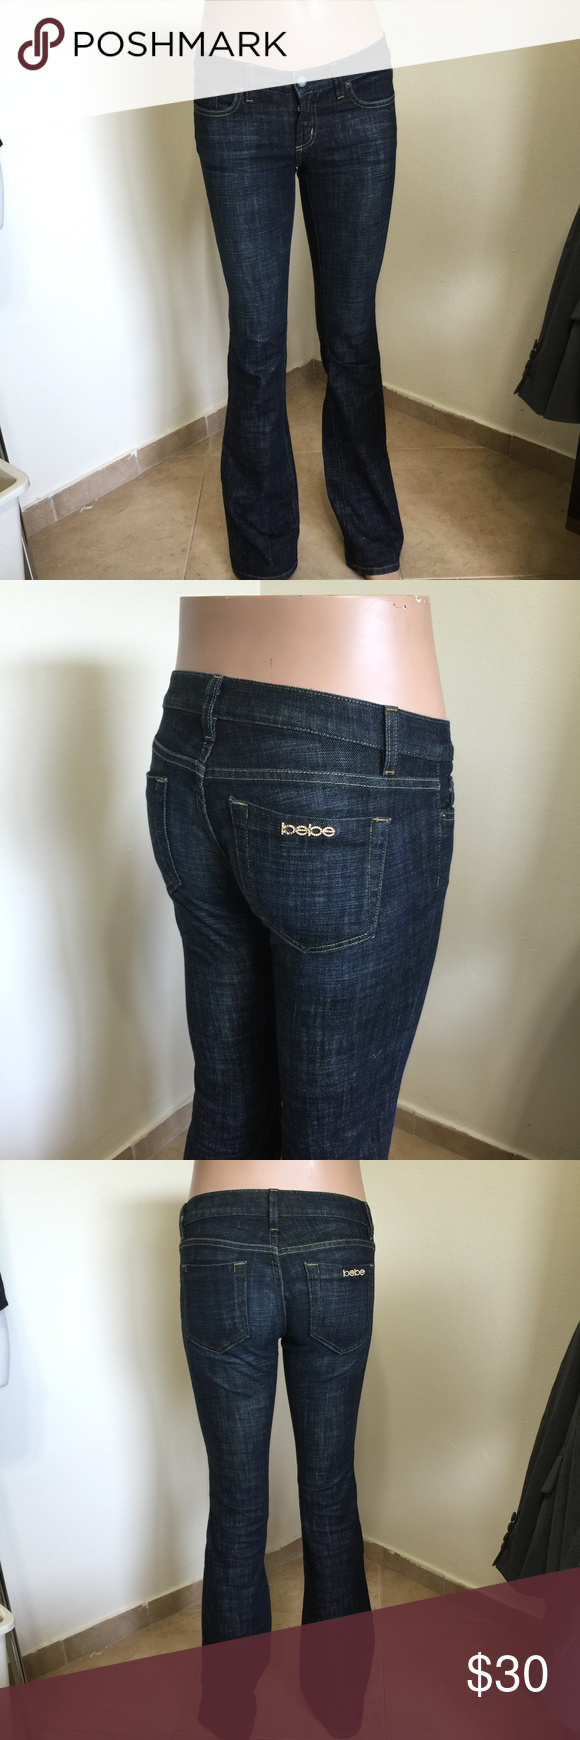 Bebe Bootcut Carmen Rivet Dark Wash Jeans w28 L34 Label-Bebe Jeans Style- Carmen Rivet Bootcut Jeans, dips in front, Gold/Rhinestone Logo on back pocket, (missing a few stones, not noticeable, l) flattering fit!  Size- W28 Shown on a size 4/6 mannequin Fits really nice.  Measurements-W-32 (Because low on hips) Hip-40 Length-34 Rise-7, Leg opening- 9 Color- Dark Wash  Fabric-98% Cotton, 2% Spandex Condition-Like new. worn and washed once Origin-USA These are the same size as the Rock and…